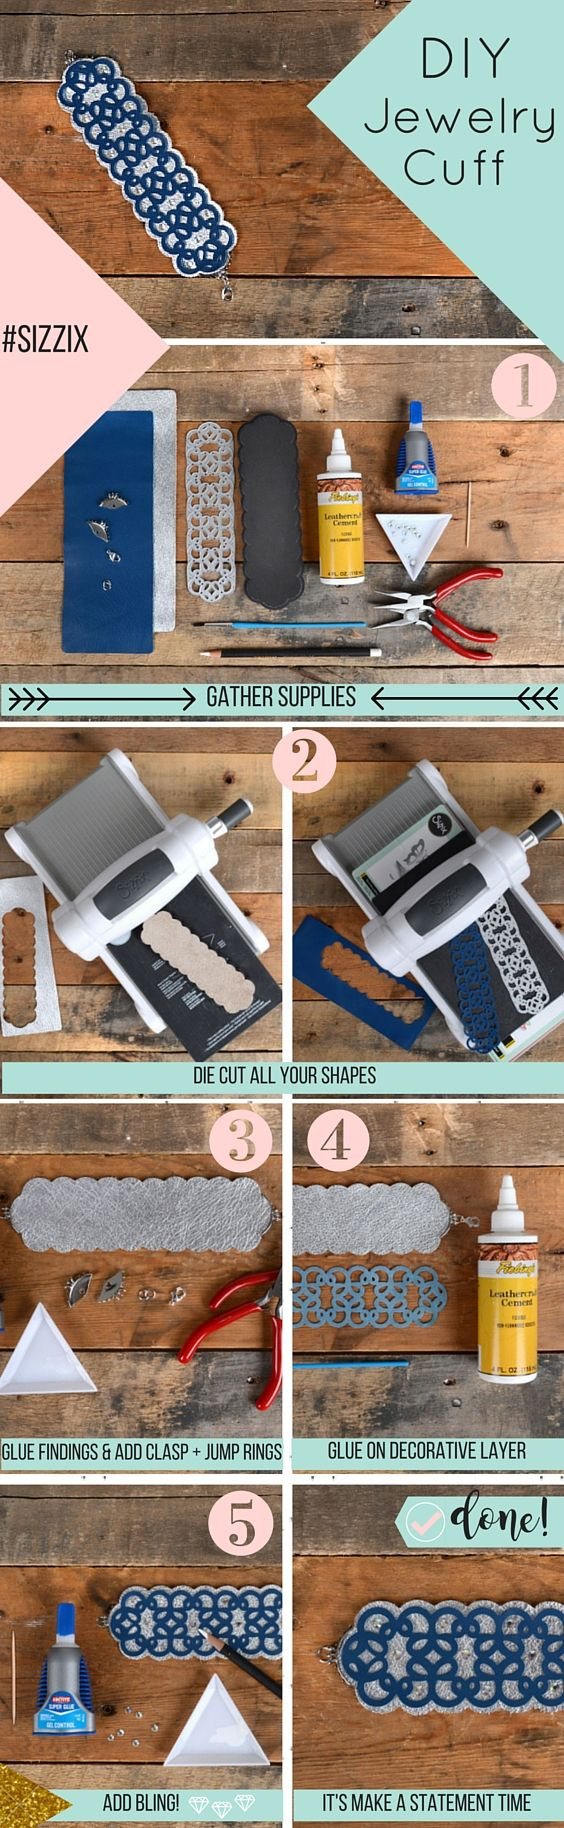 DIY Leather Cuff- What happens when you combine Jill Mackay's brand new Open Work Bracelet die with our new Sizzix Leather? You get a gorgeously intricate bracelet. The best part about this is that you can get the same look in just a few steps.